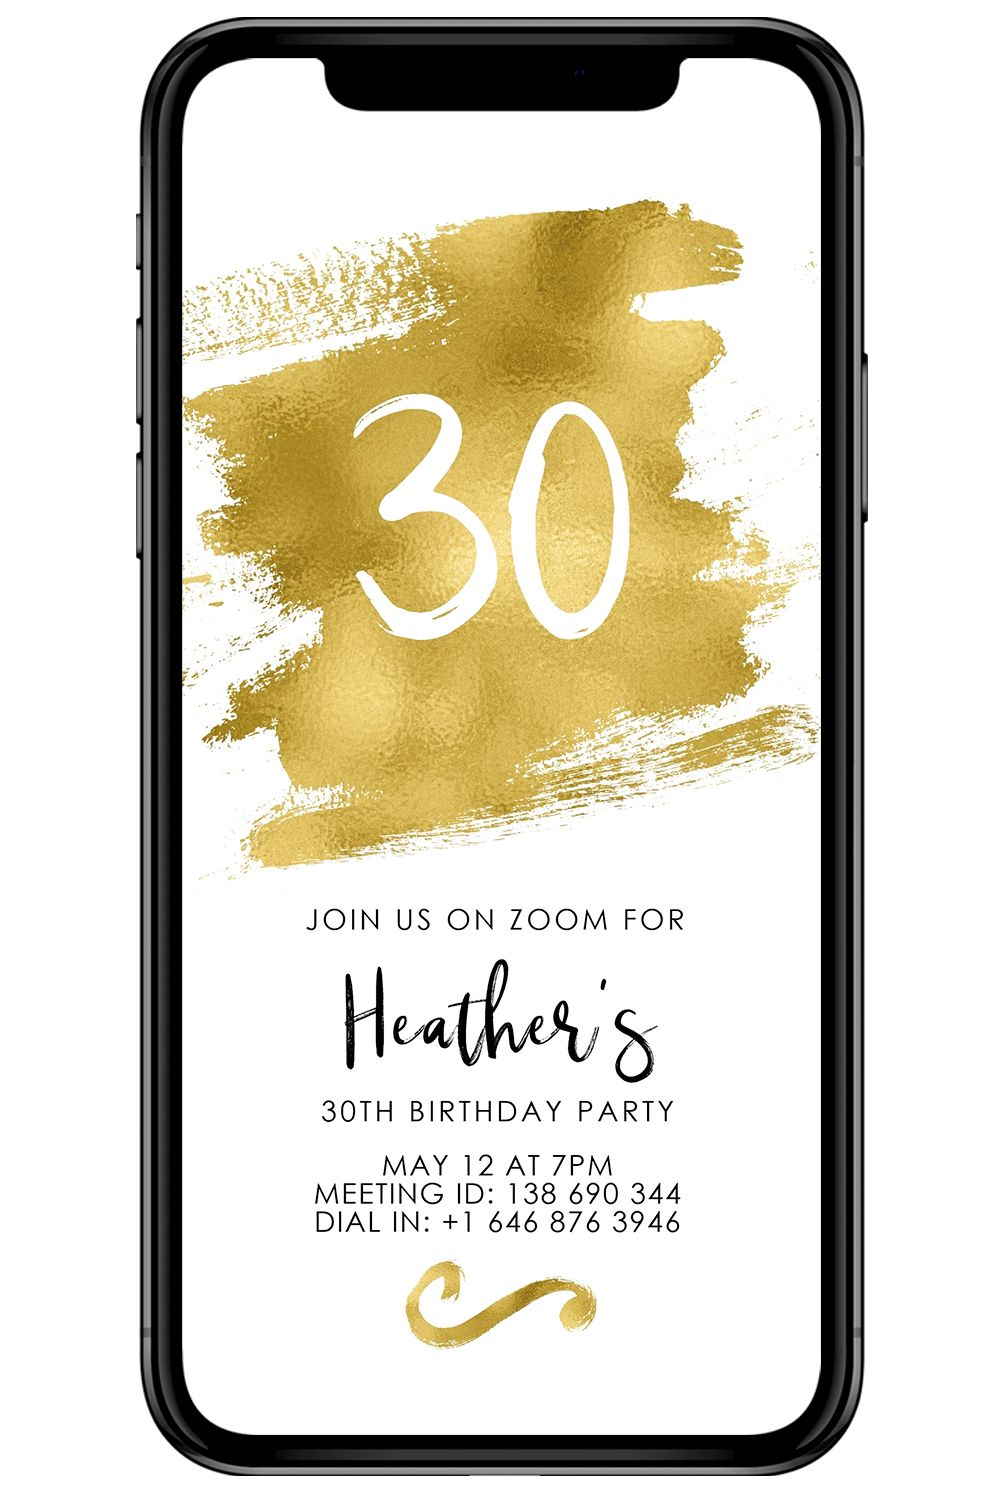 Facetime Party Invite Virtual Party Evite Self Isolating Etsy In 2020 Party Invitations Virtual Party Editable Invitations